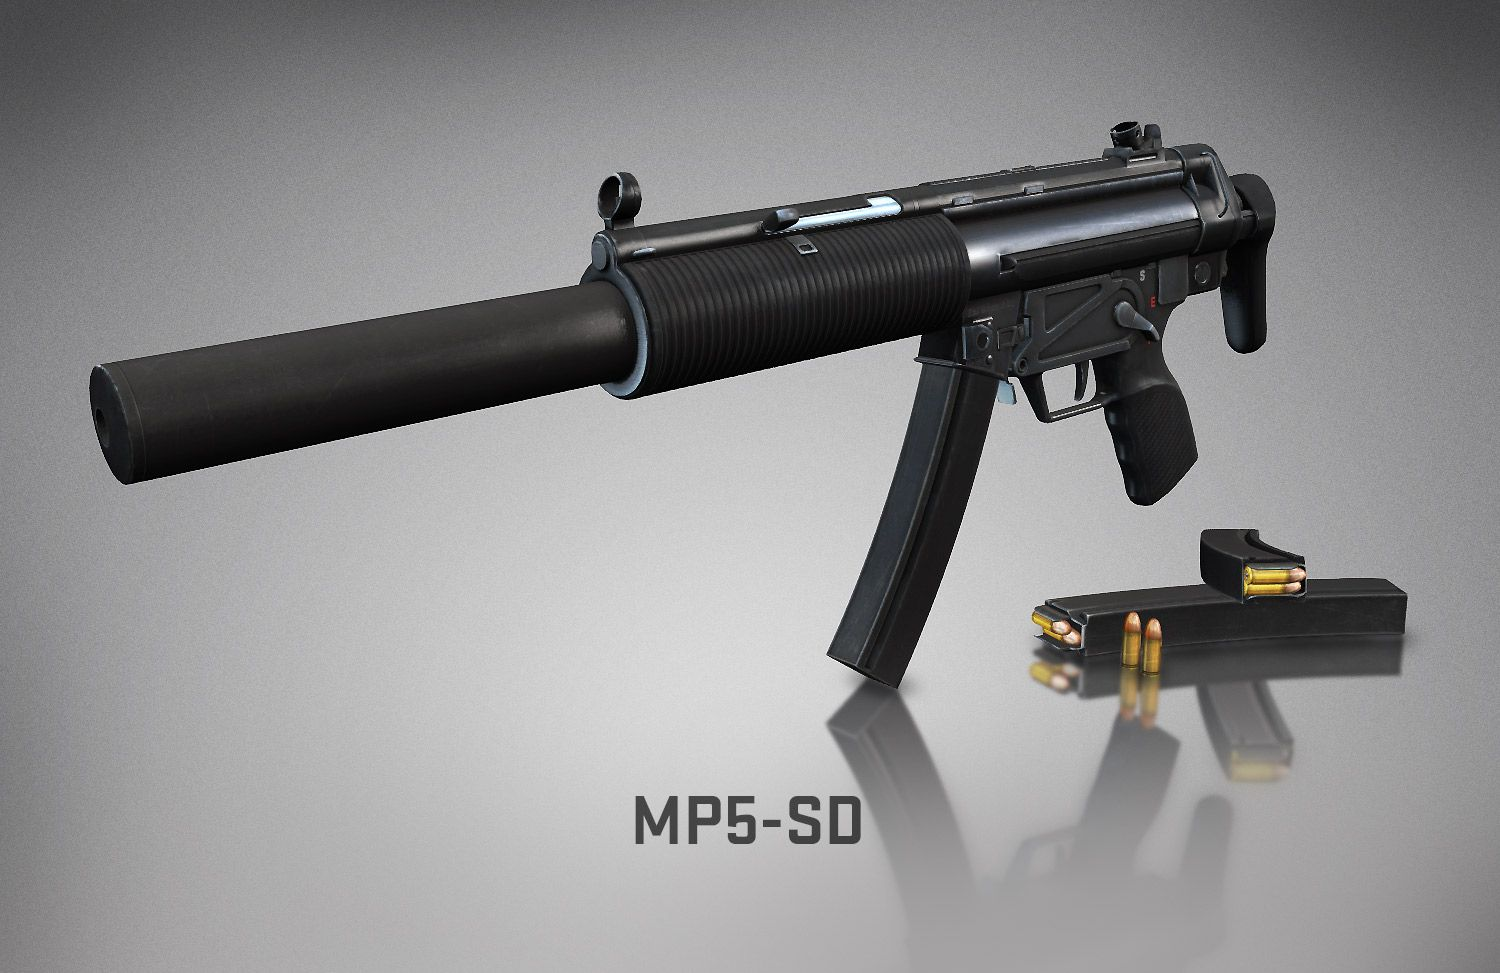 Counter strike Global Offensive is bringing back the mp5, csgo trae de vuelta la icónica smg mp5